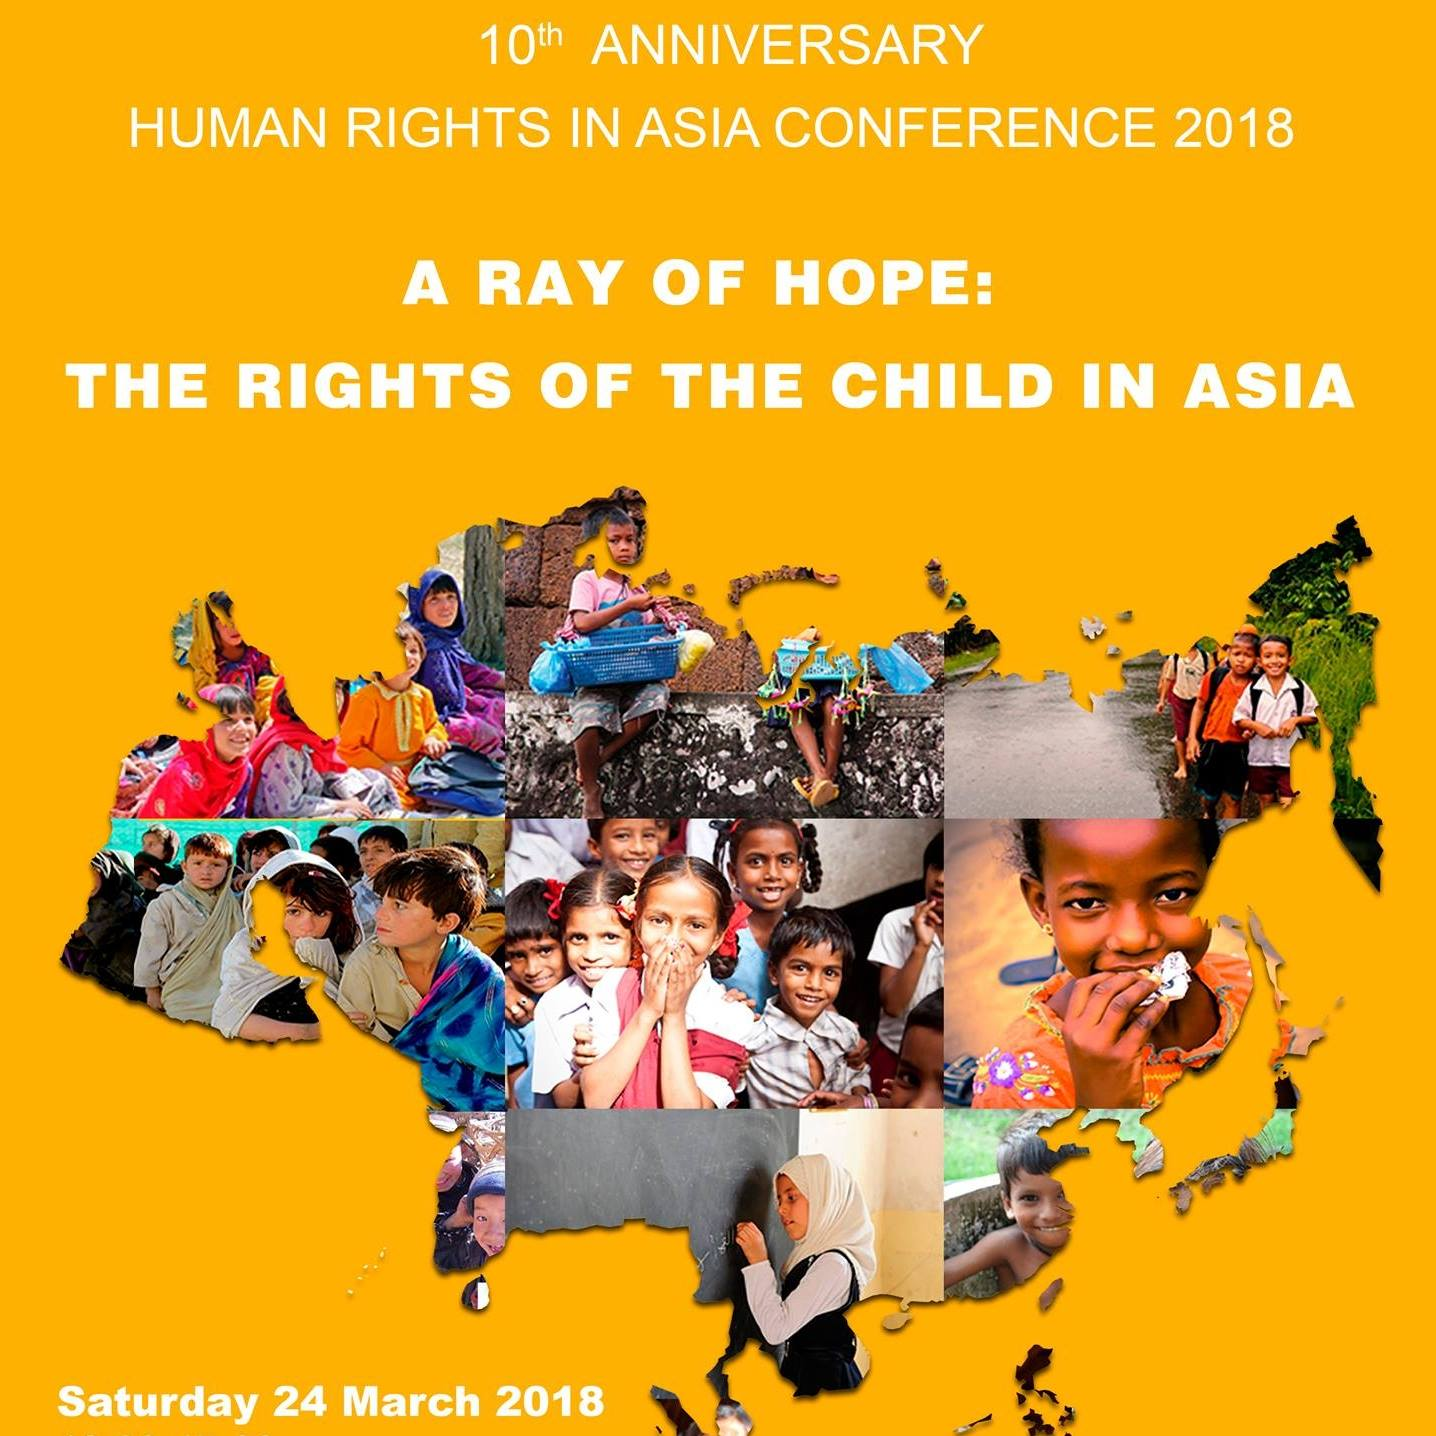 Human Rights in Asia Conference 2018